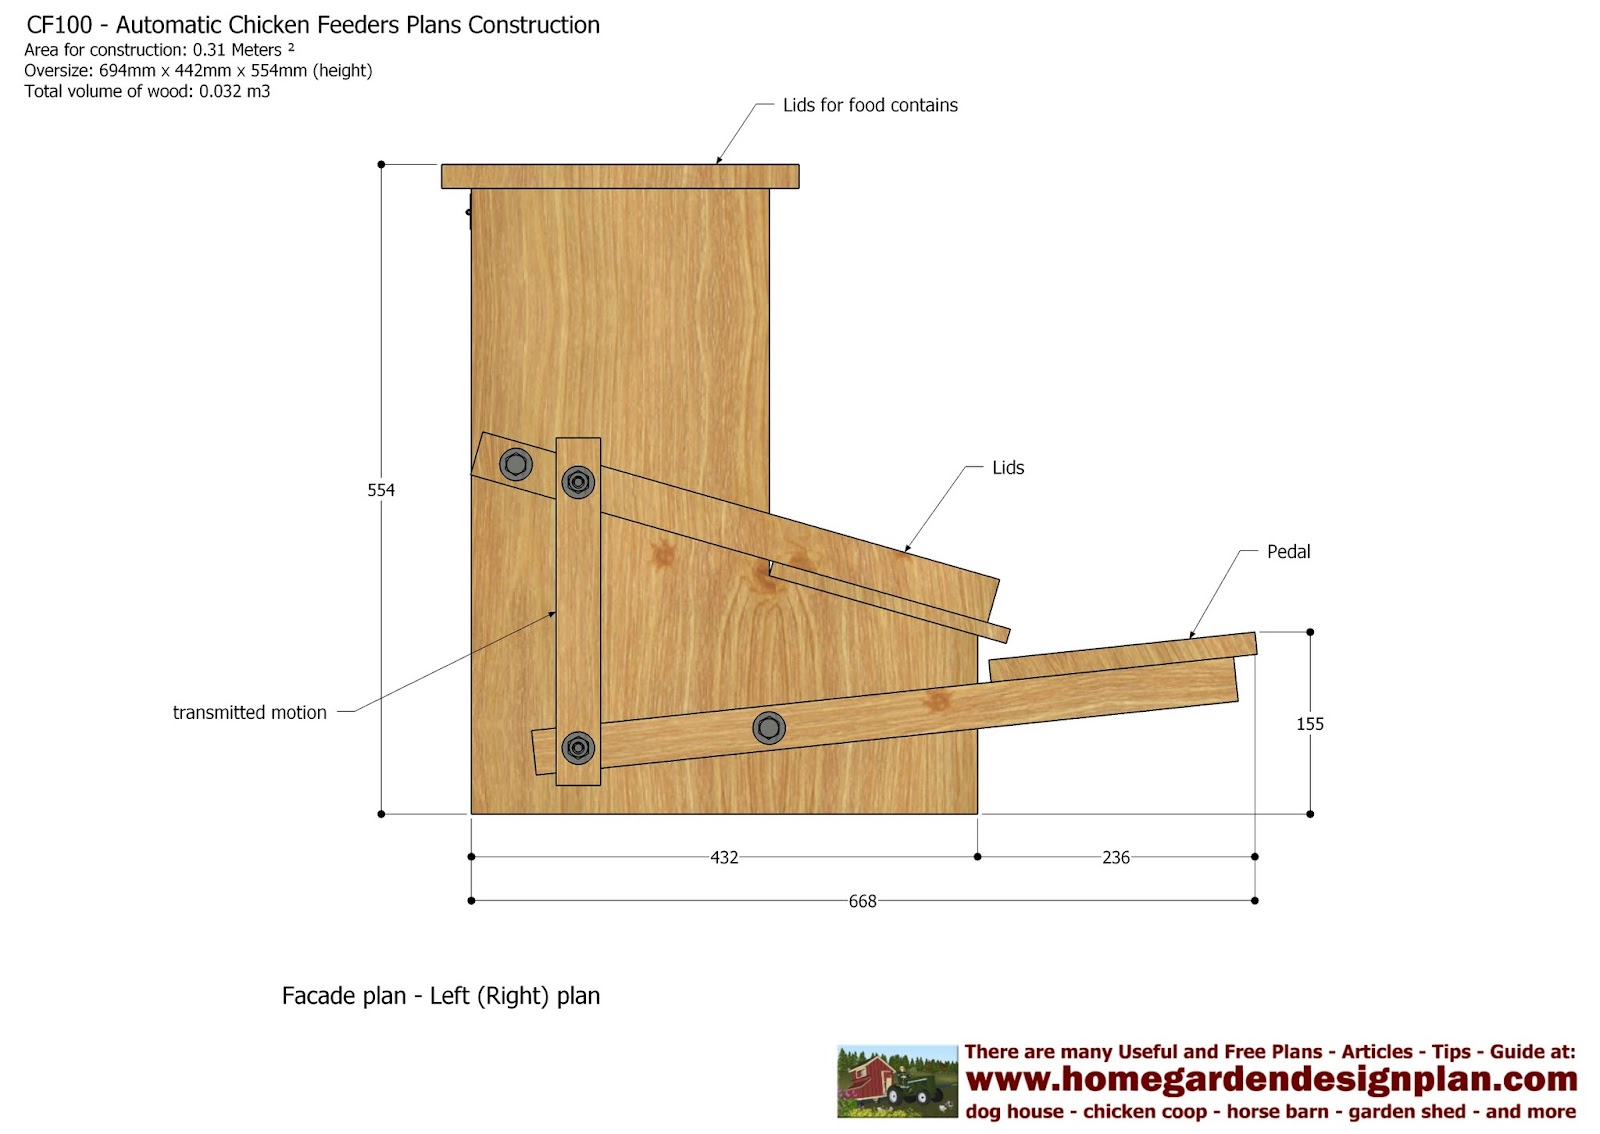 Y2MwNjAy How To Make A Homemadedeer Feeder Out Of Wood furthermore How To Build A Wooden Deer Feeder moreover Pdf Diy Wooden Deer Trough Feeder Plans Download Classic Wooden Boat Plans Zephyr furthermore Index as well Wooden Deer Trough Feeder Plans. on how to build a wood deer feeder plans free download